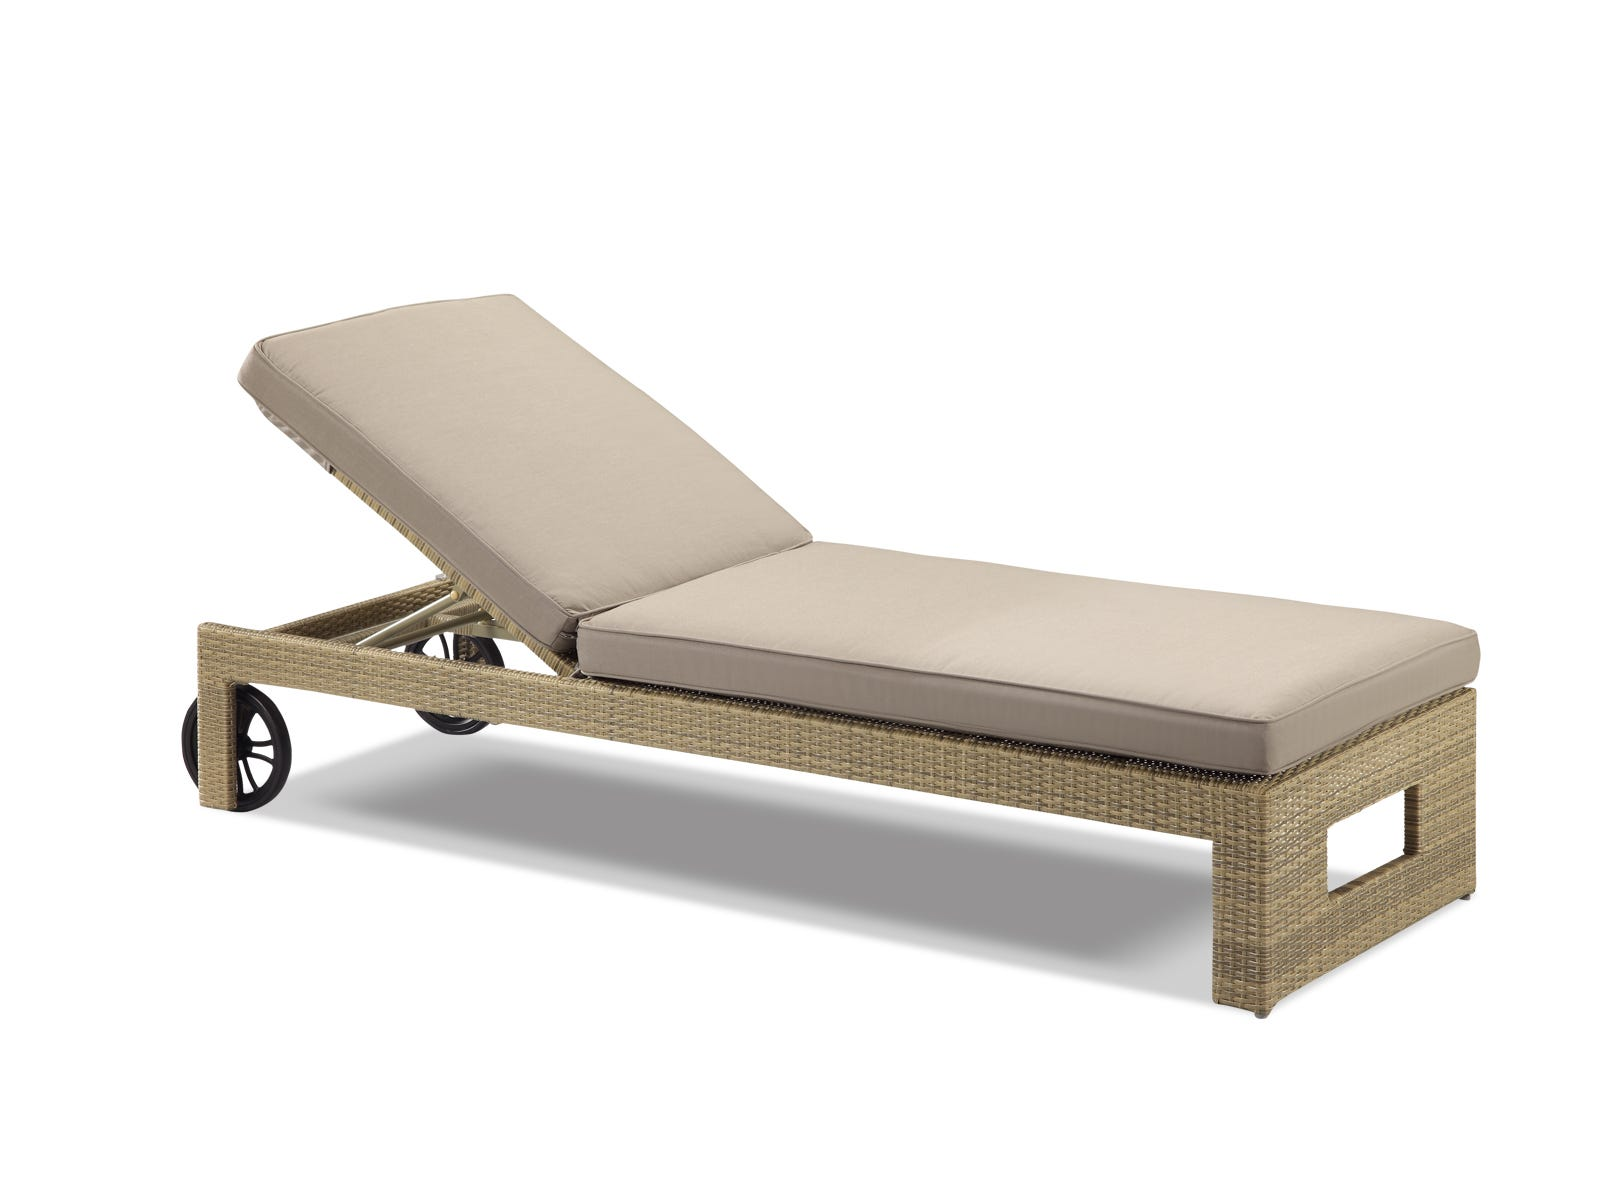 outdoor-furniture-sunlounge-wicker-rosseau-1pc-sahara-web